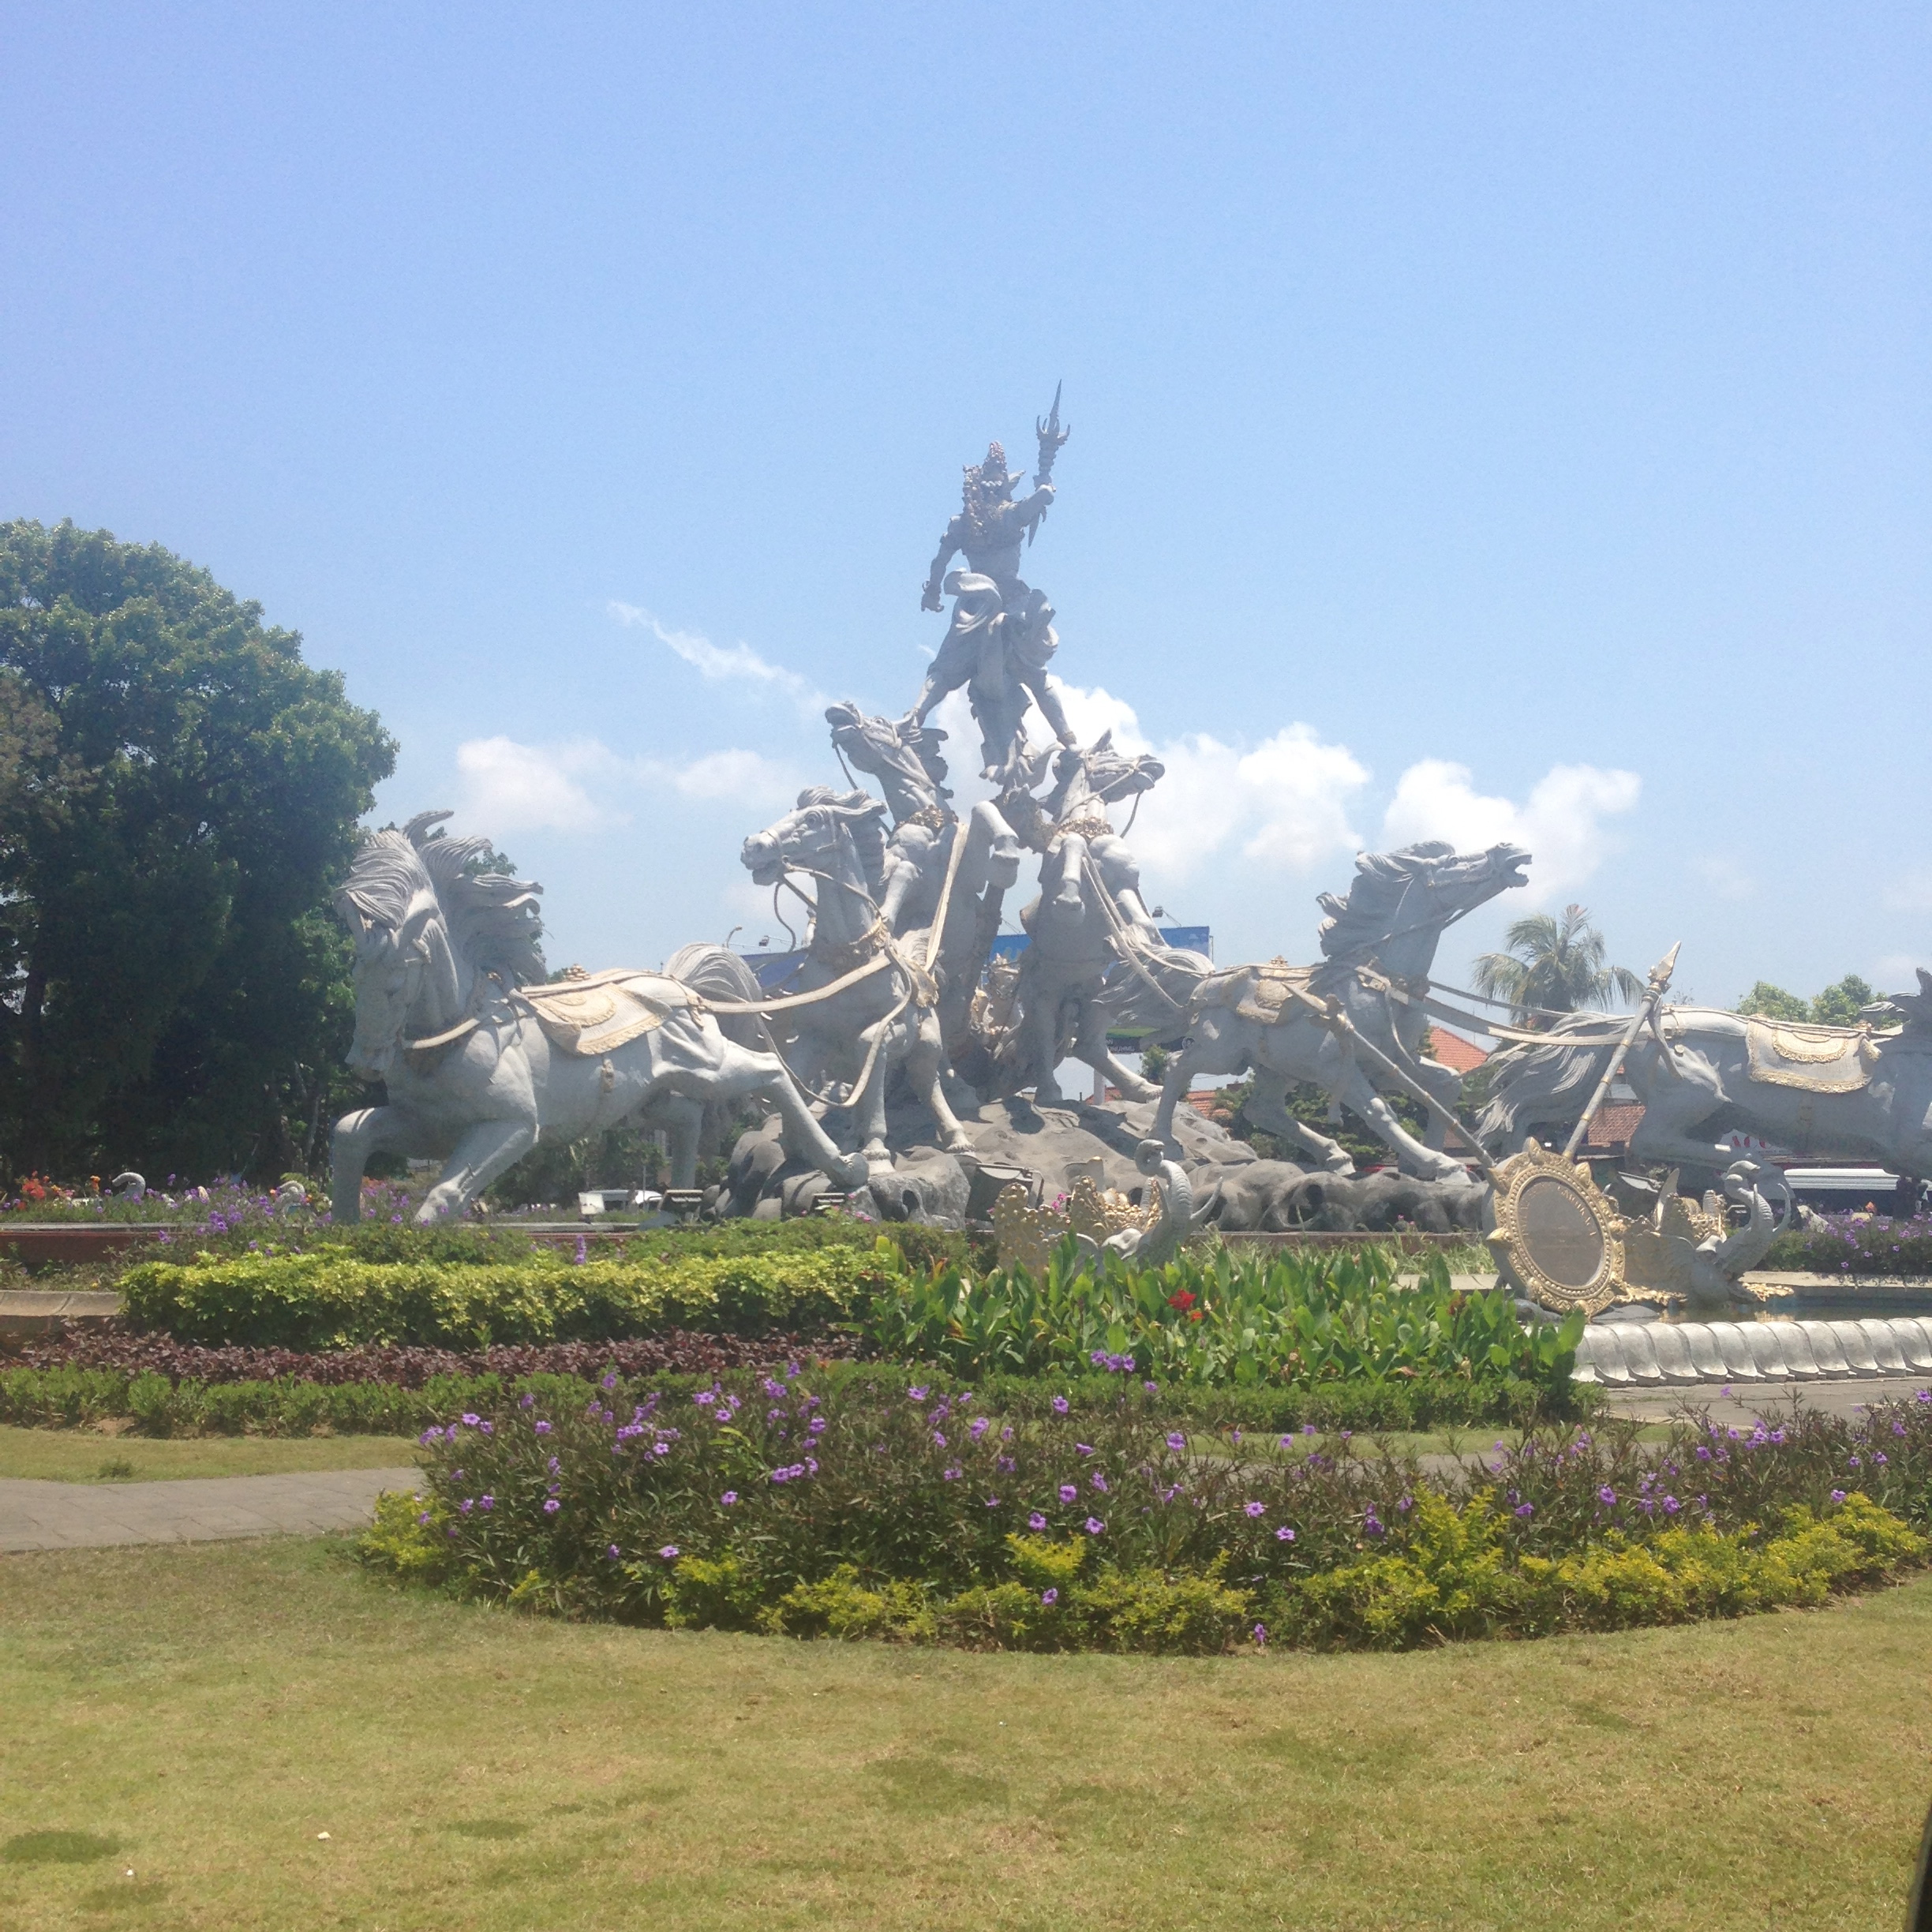 One of the many amazing statues that you will see upon arriving into Bali.